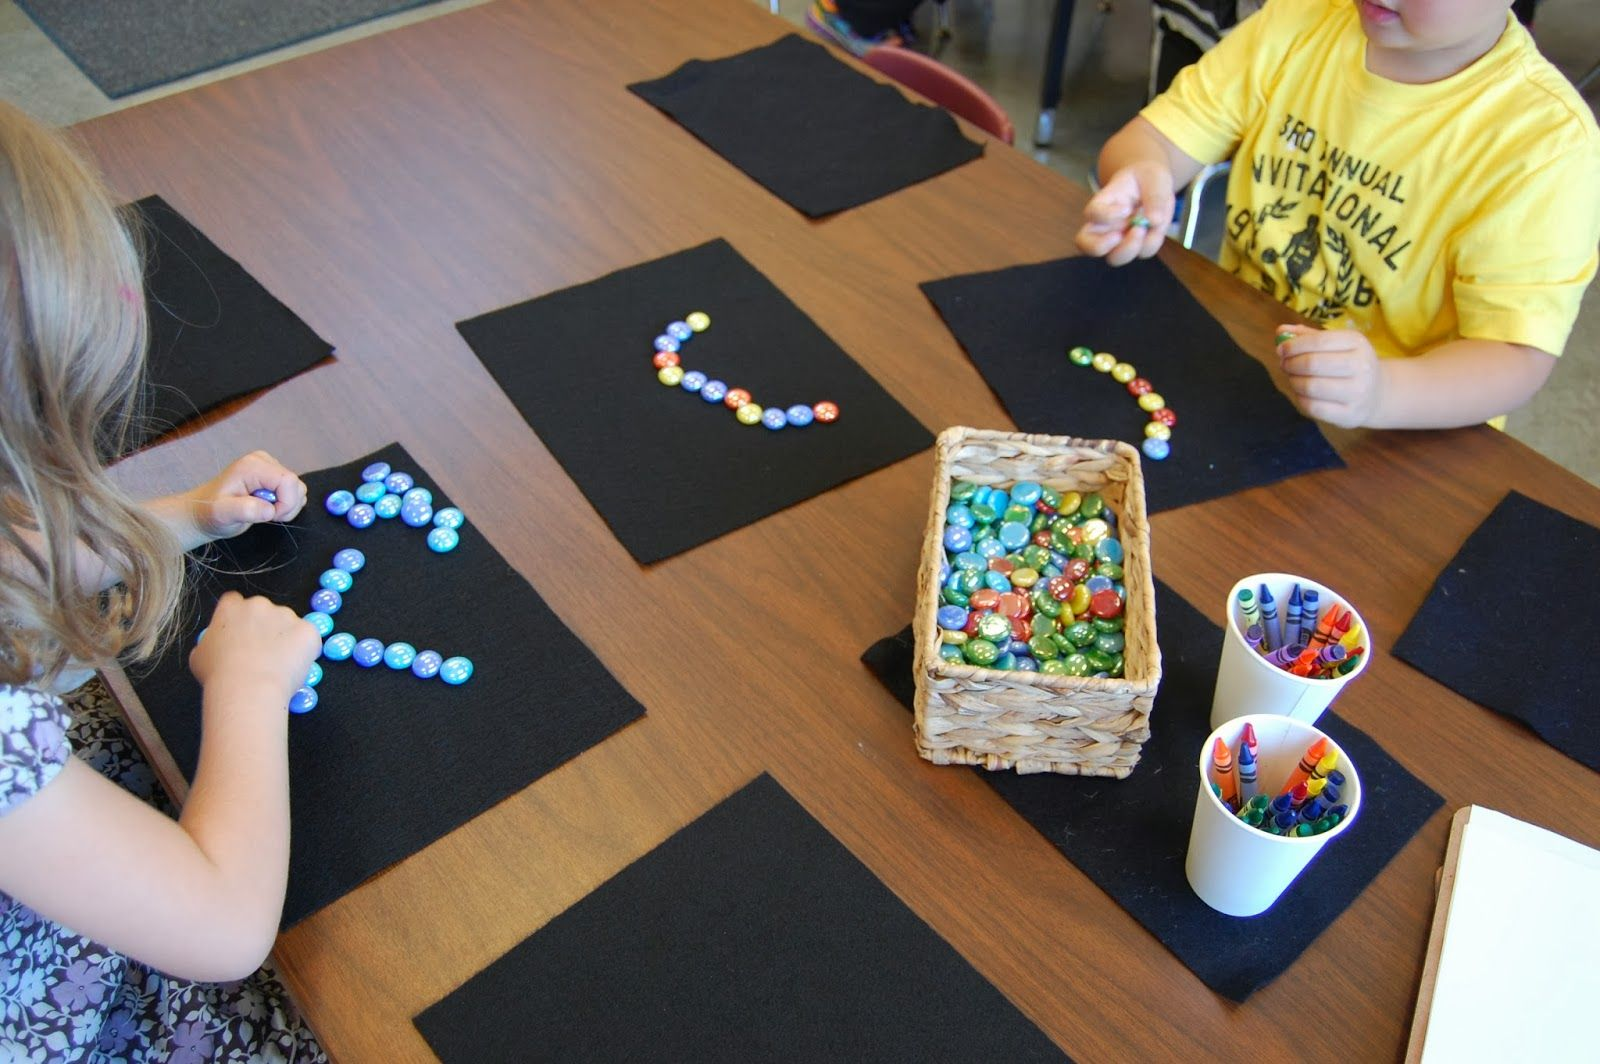 What Different Patterns Can You Make Mathematical Intention Creating Repeating Patterns Using